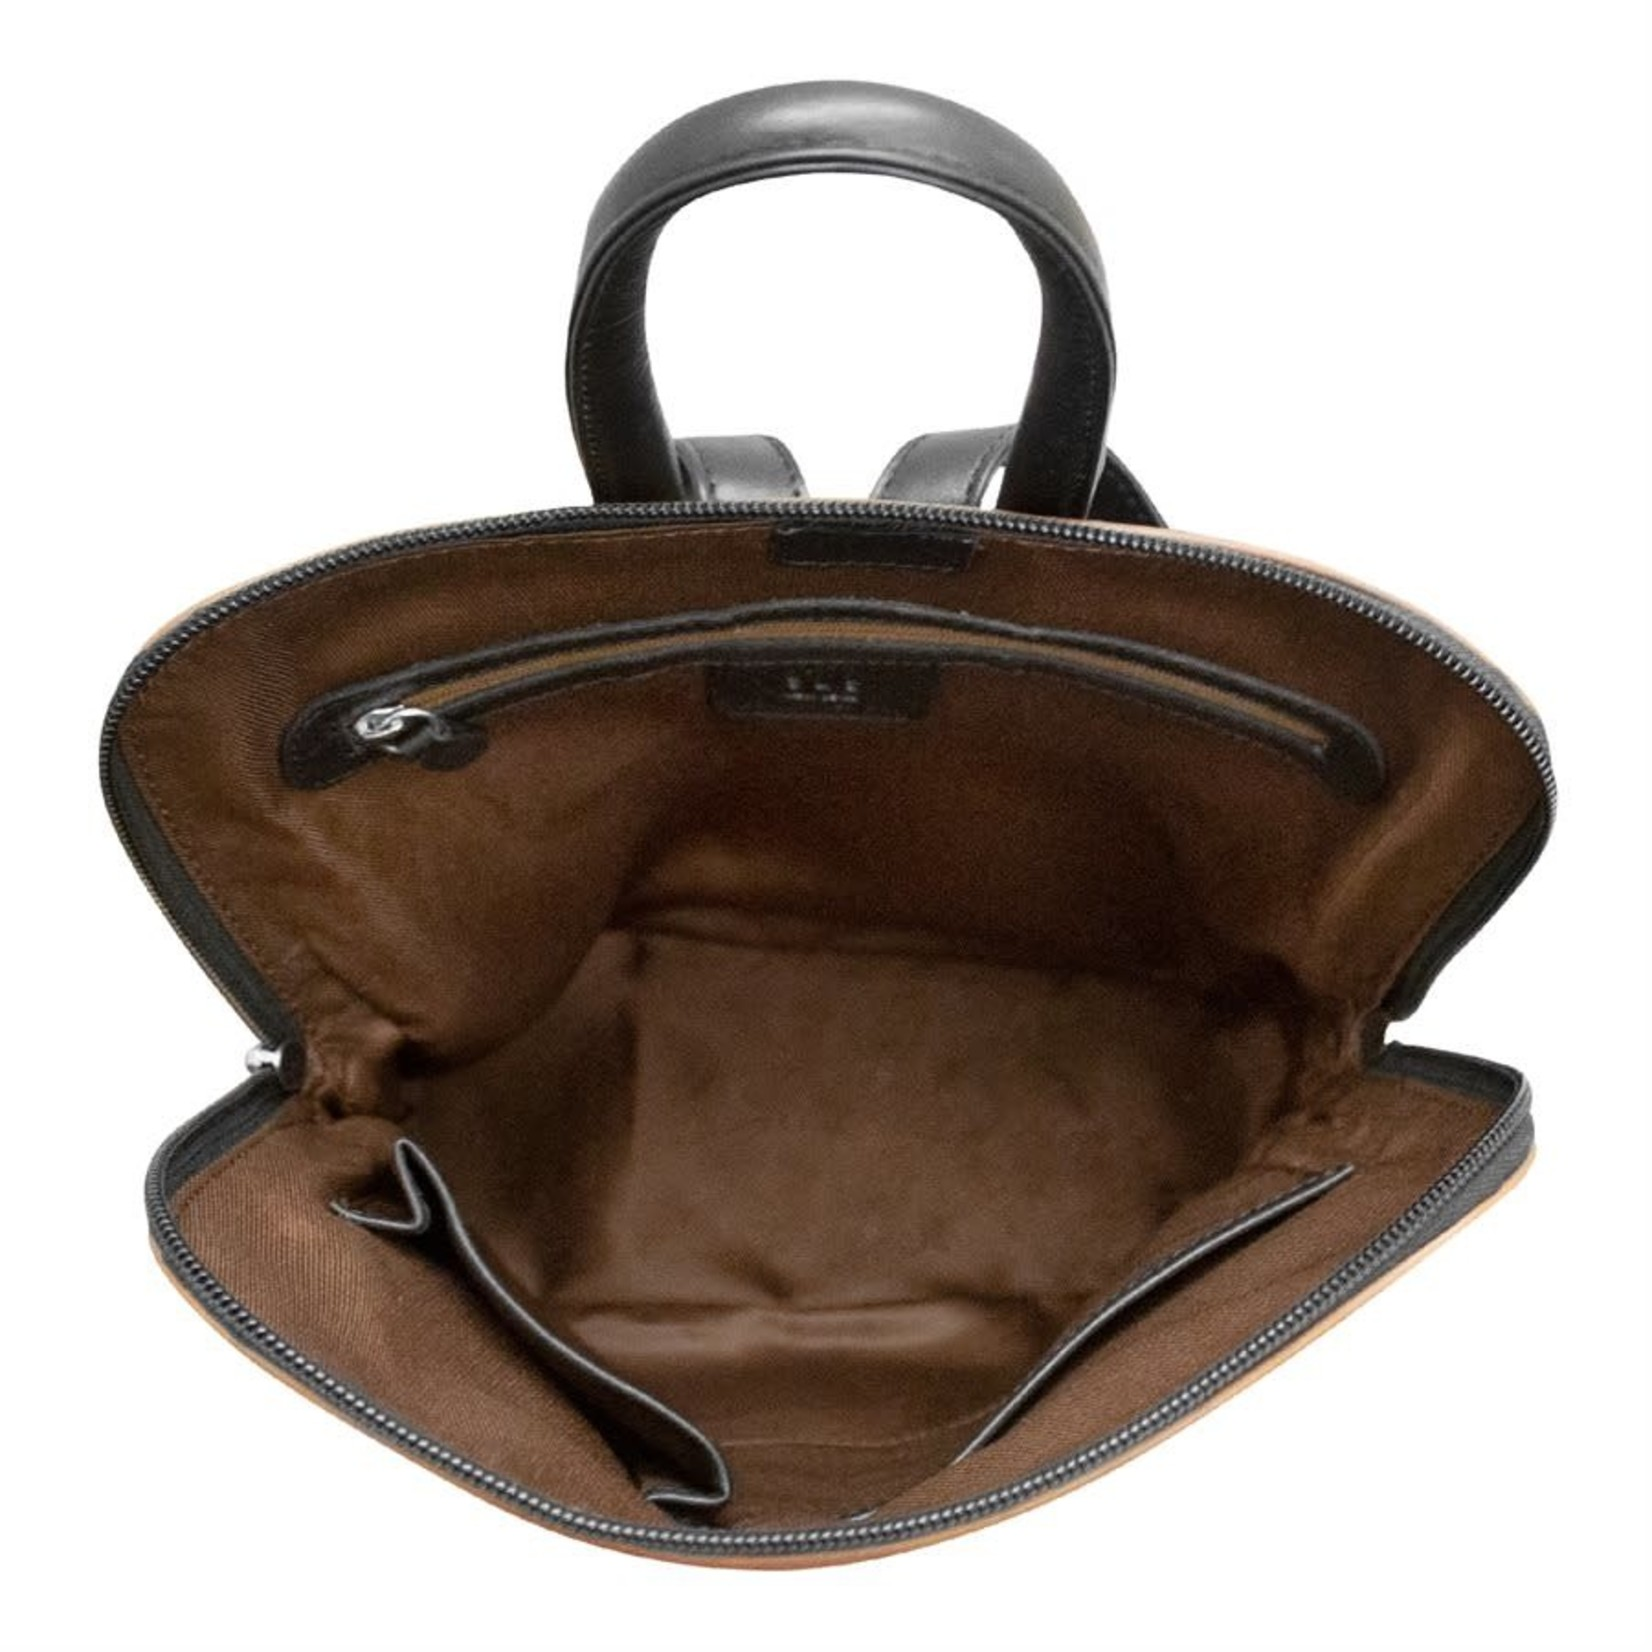 Leather Handbags and Accessories 6503 Toffee/Black - Small Backpack